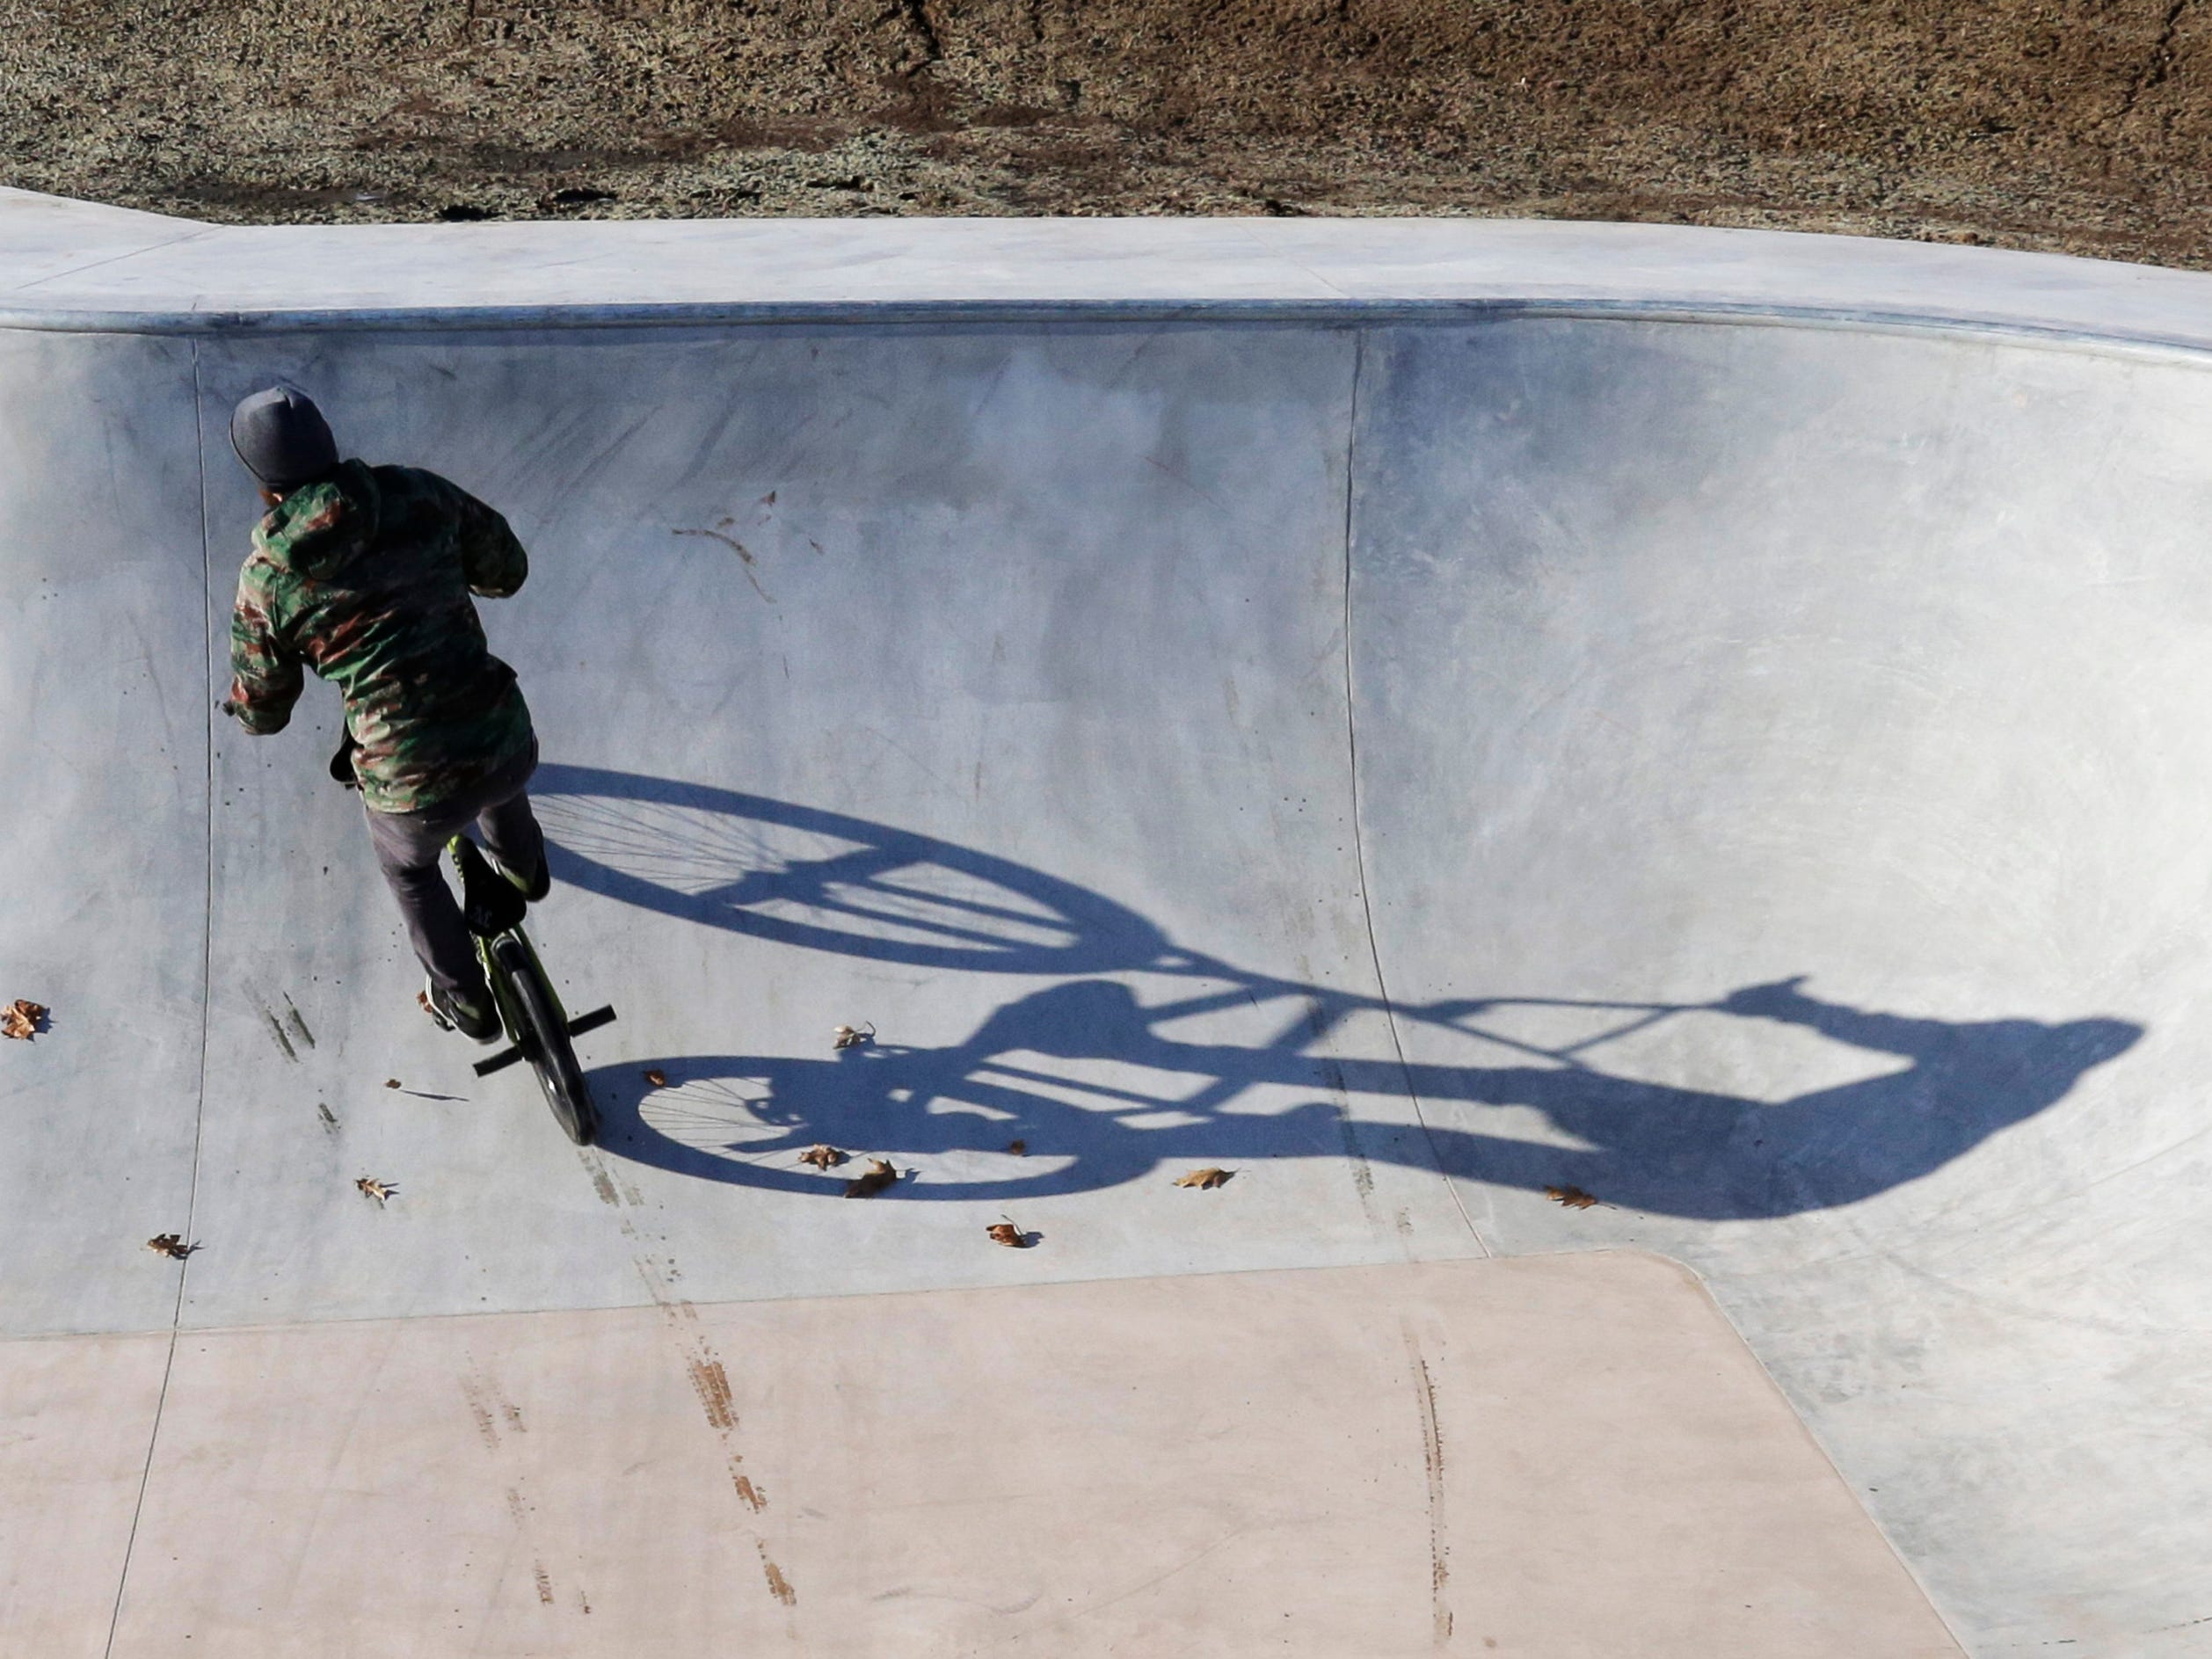 Taylor Thompson of Sheboygan, rides with his shadow in the bowl at the new skate park at Kiwanis Park, Wednesday, January 31, 2018, in Sheboygan, Wis. Thompson said he likes the park and thinks there should be a park like it in every city.